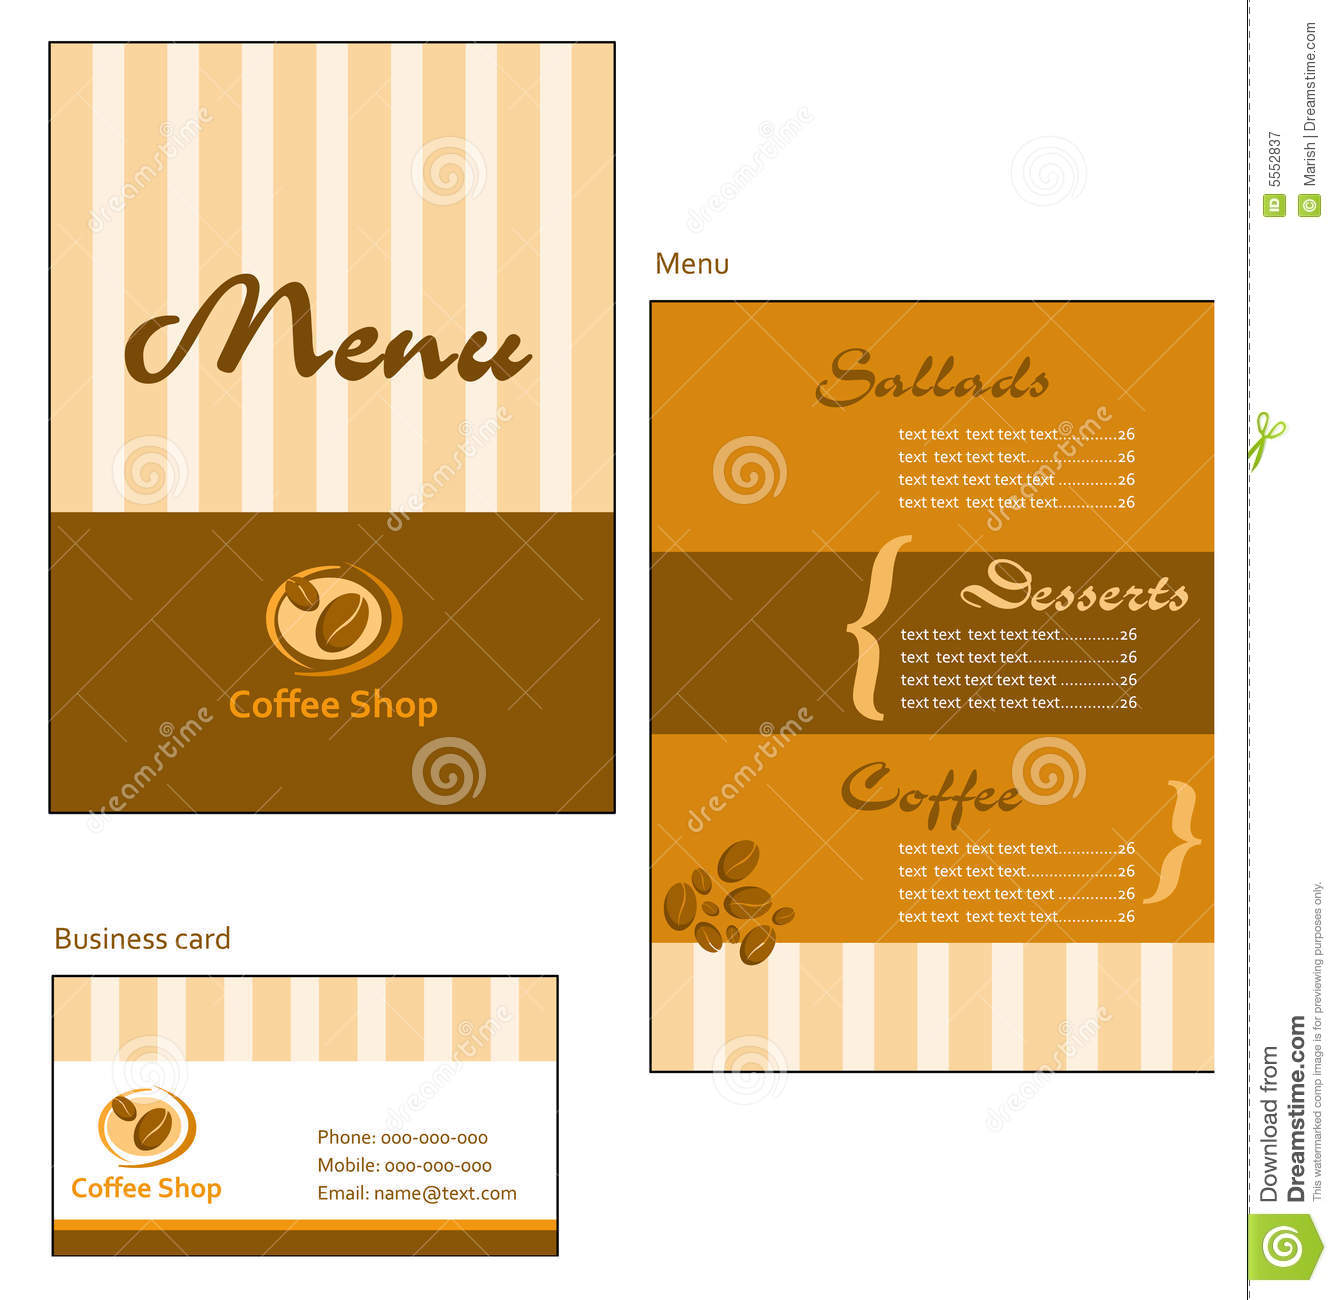 Template Designs Of Menu And Business Card For Cof Royalty ...